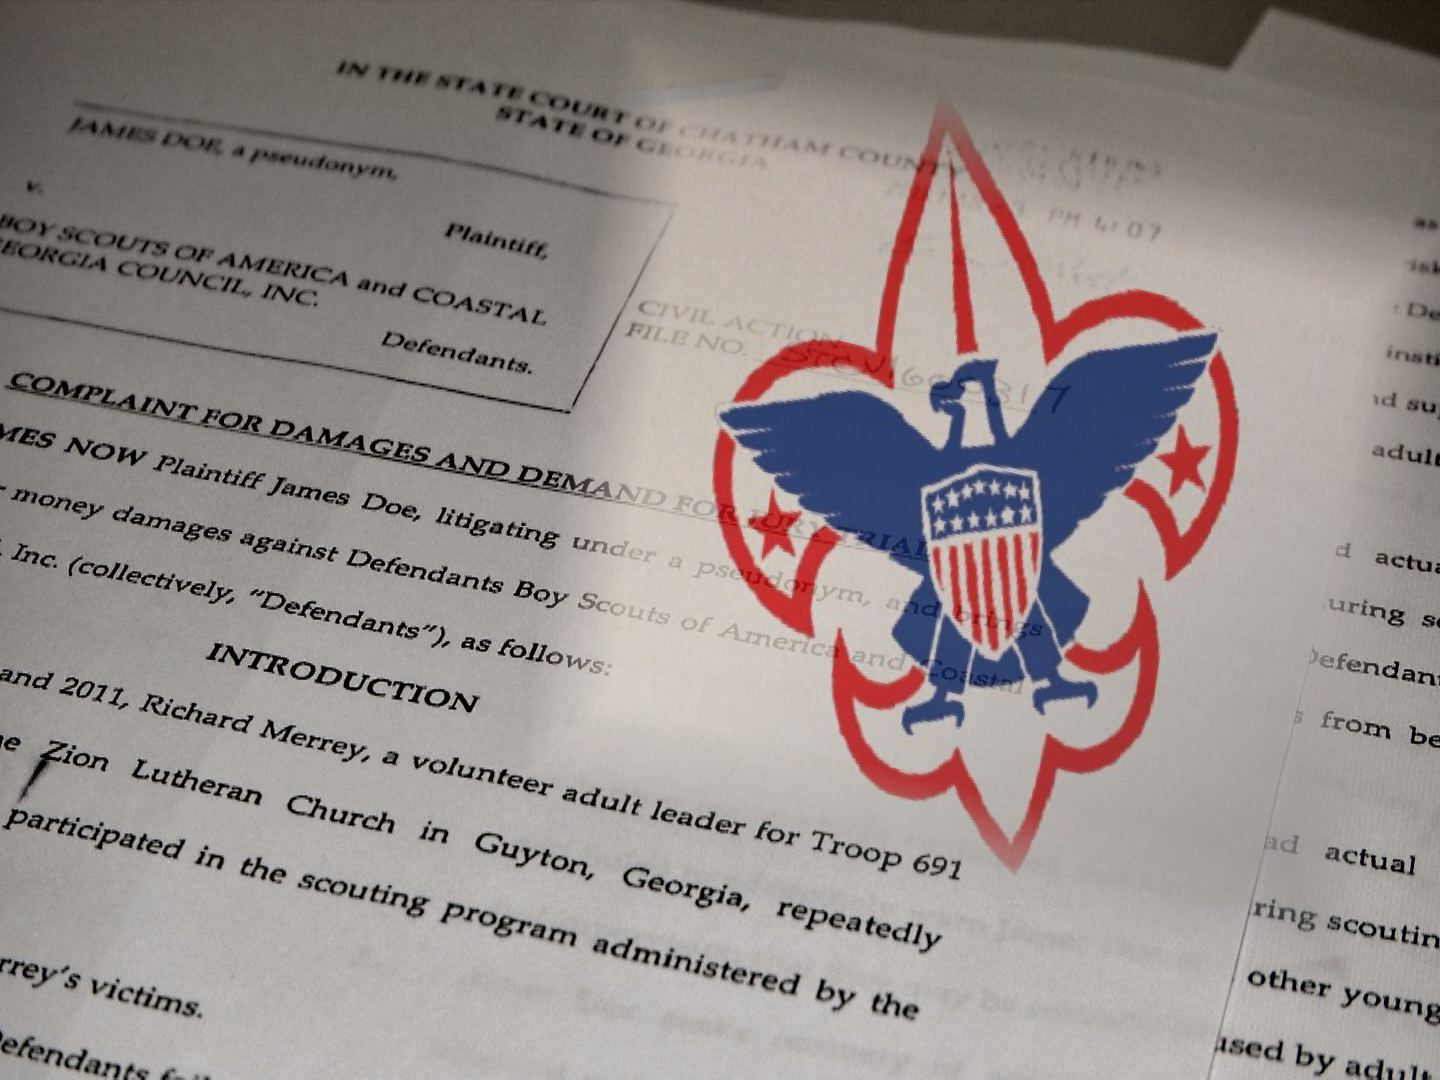 New Victim Files Suit against Coastal Georgia Boy Scouts of